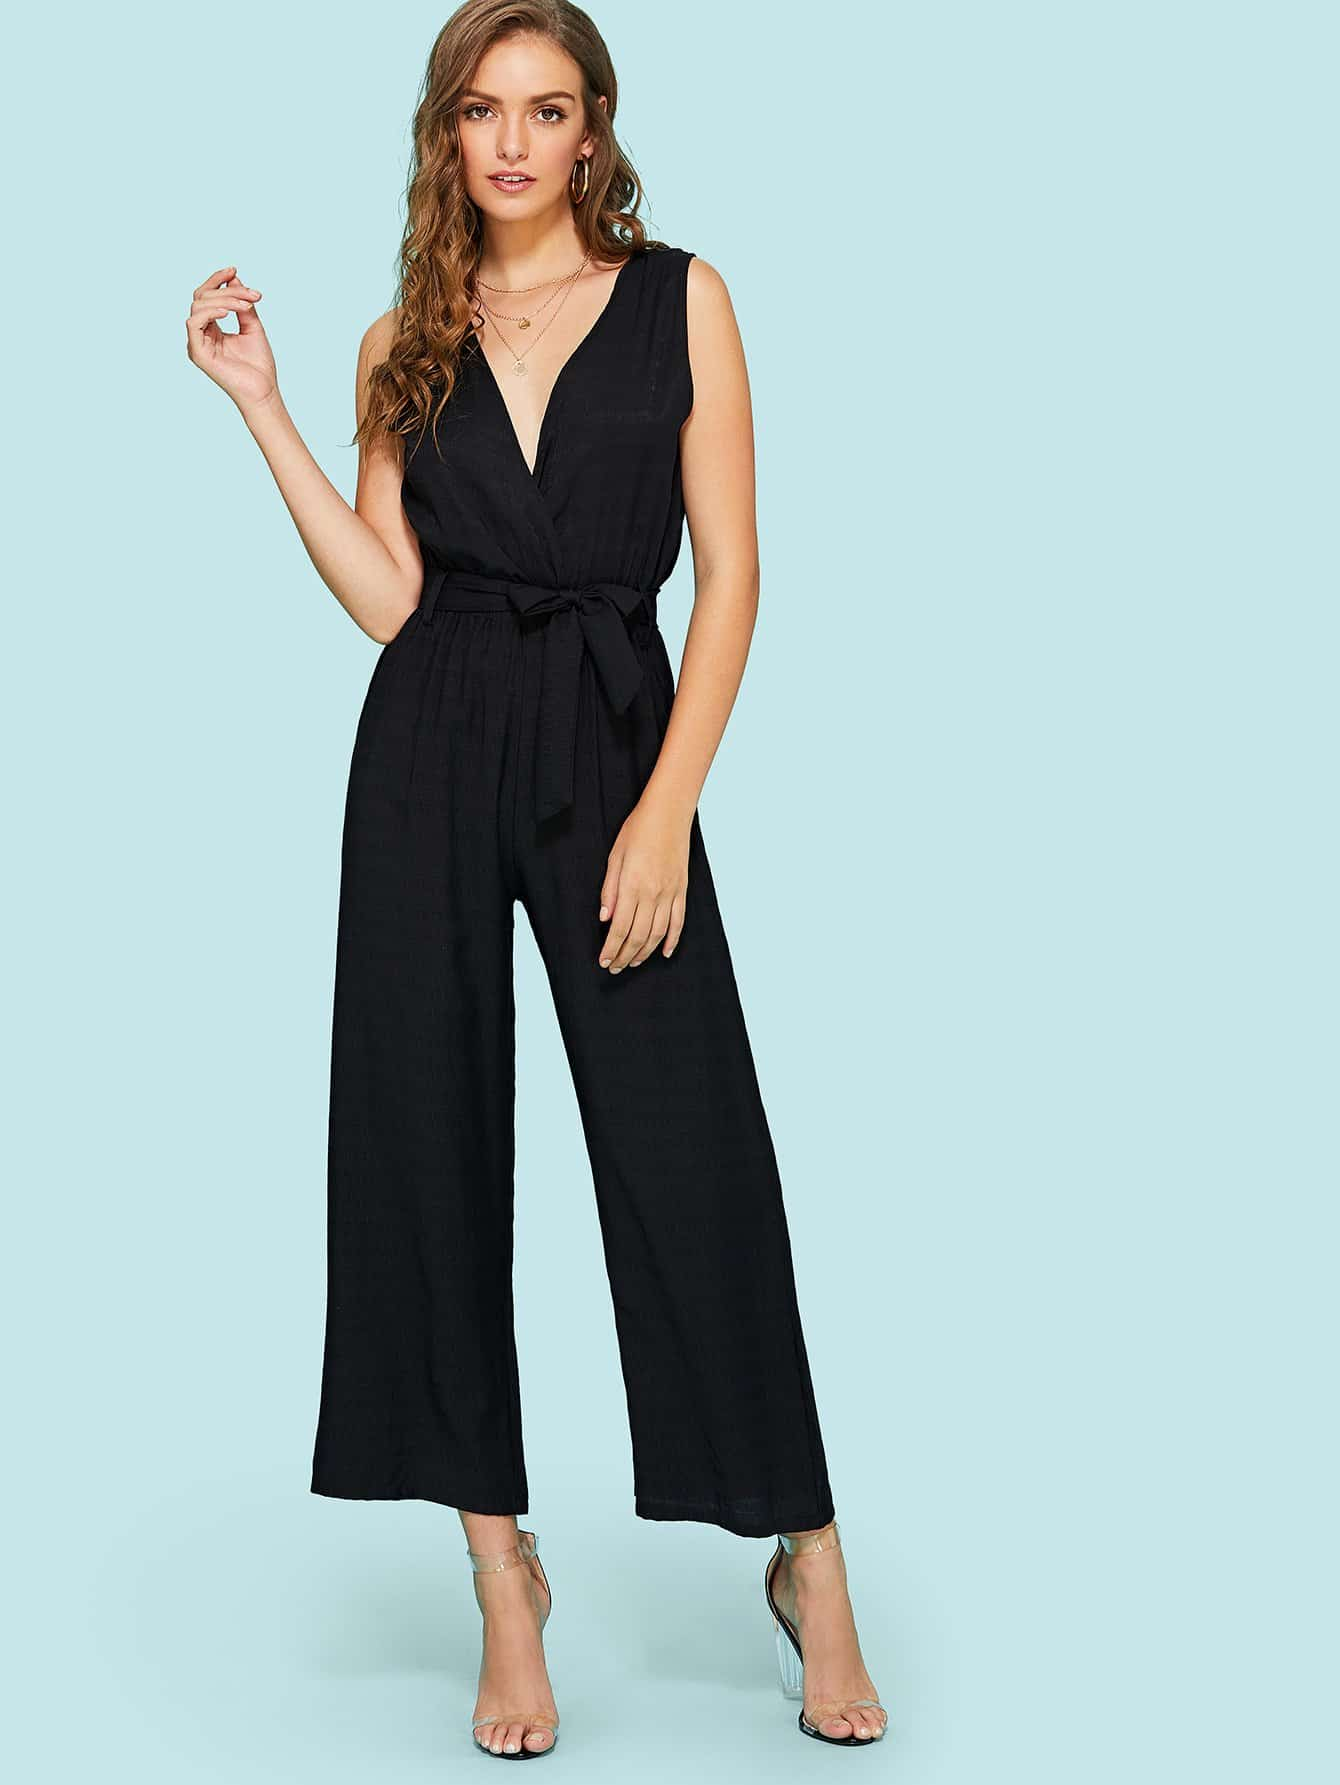 Deep V Neckline Knot Front Wrap Jumpsuit wrap front floral jumpsuit with belt